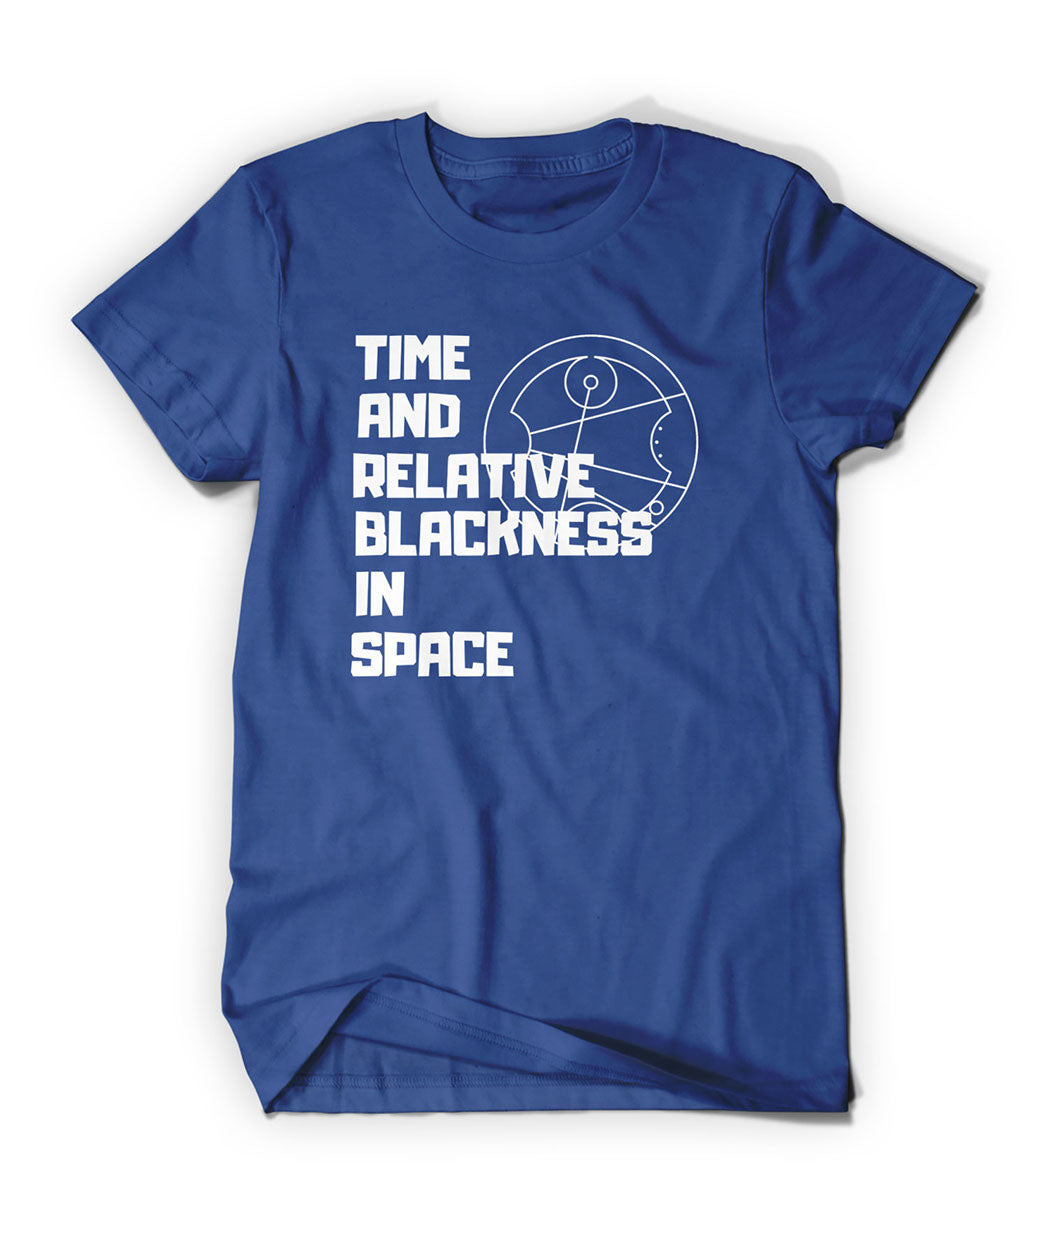 Time And Relative Blackness In Space Shirt